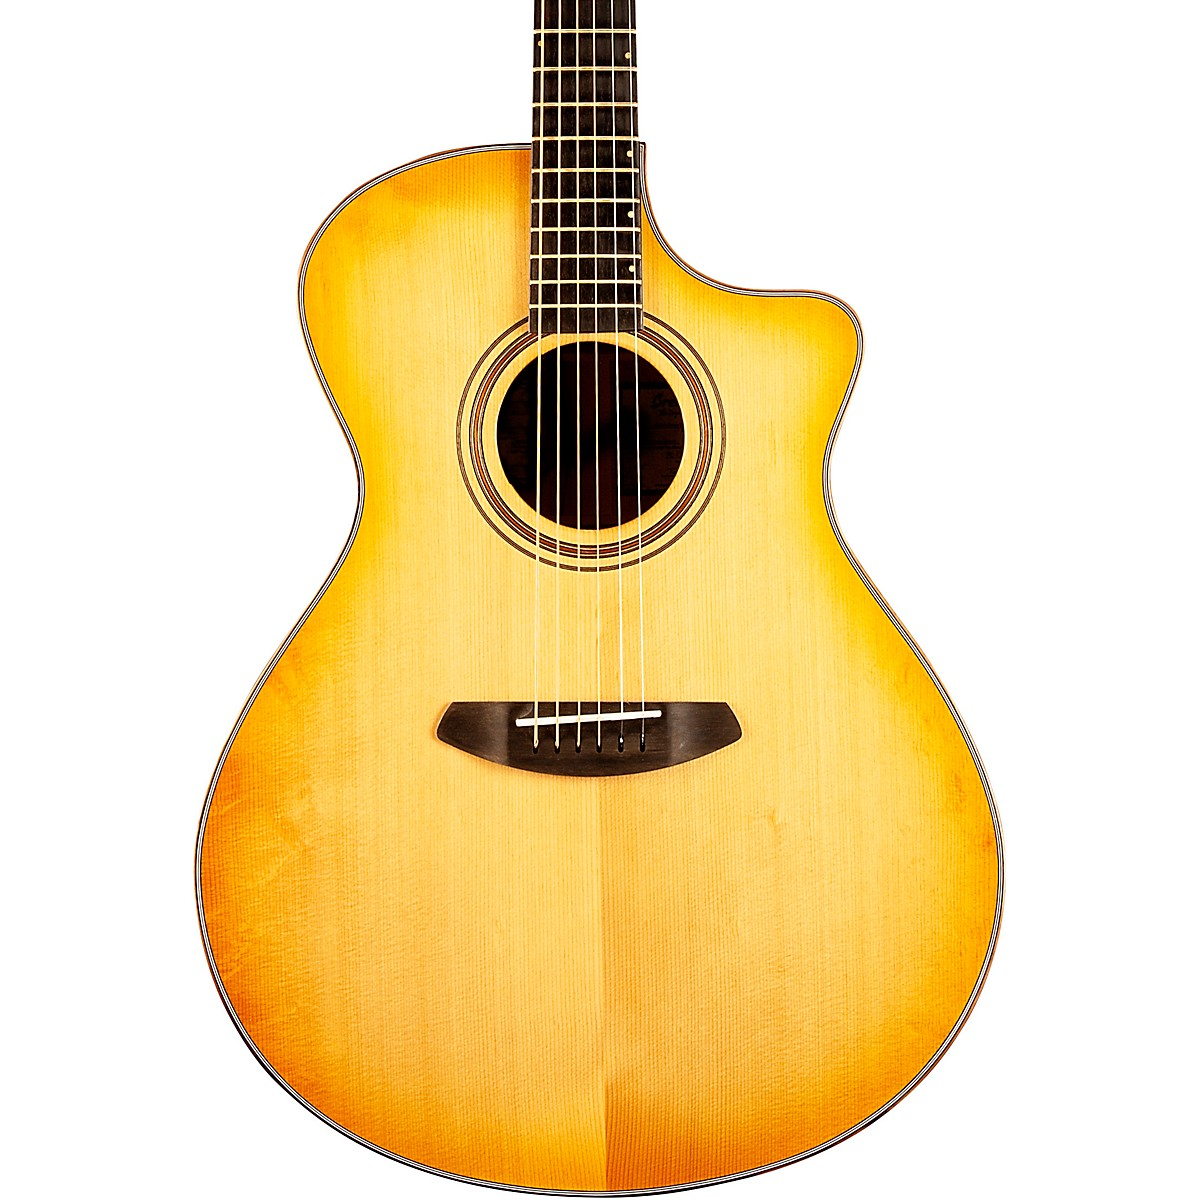 Breedlove Organic Collection Artista Concerto Cutaway CE Acoustic-Electric Guitar